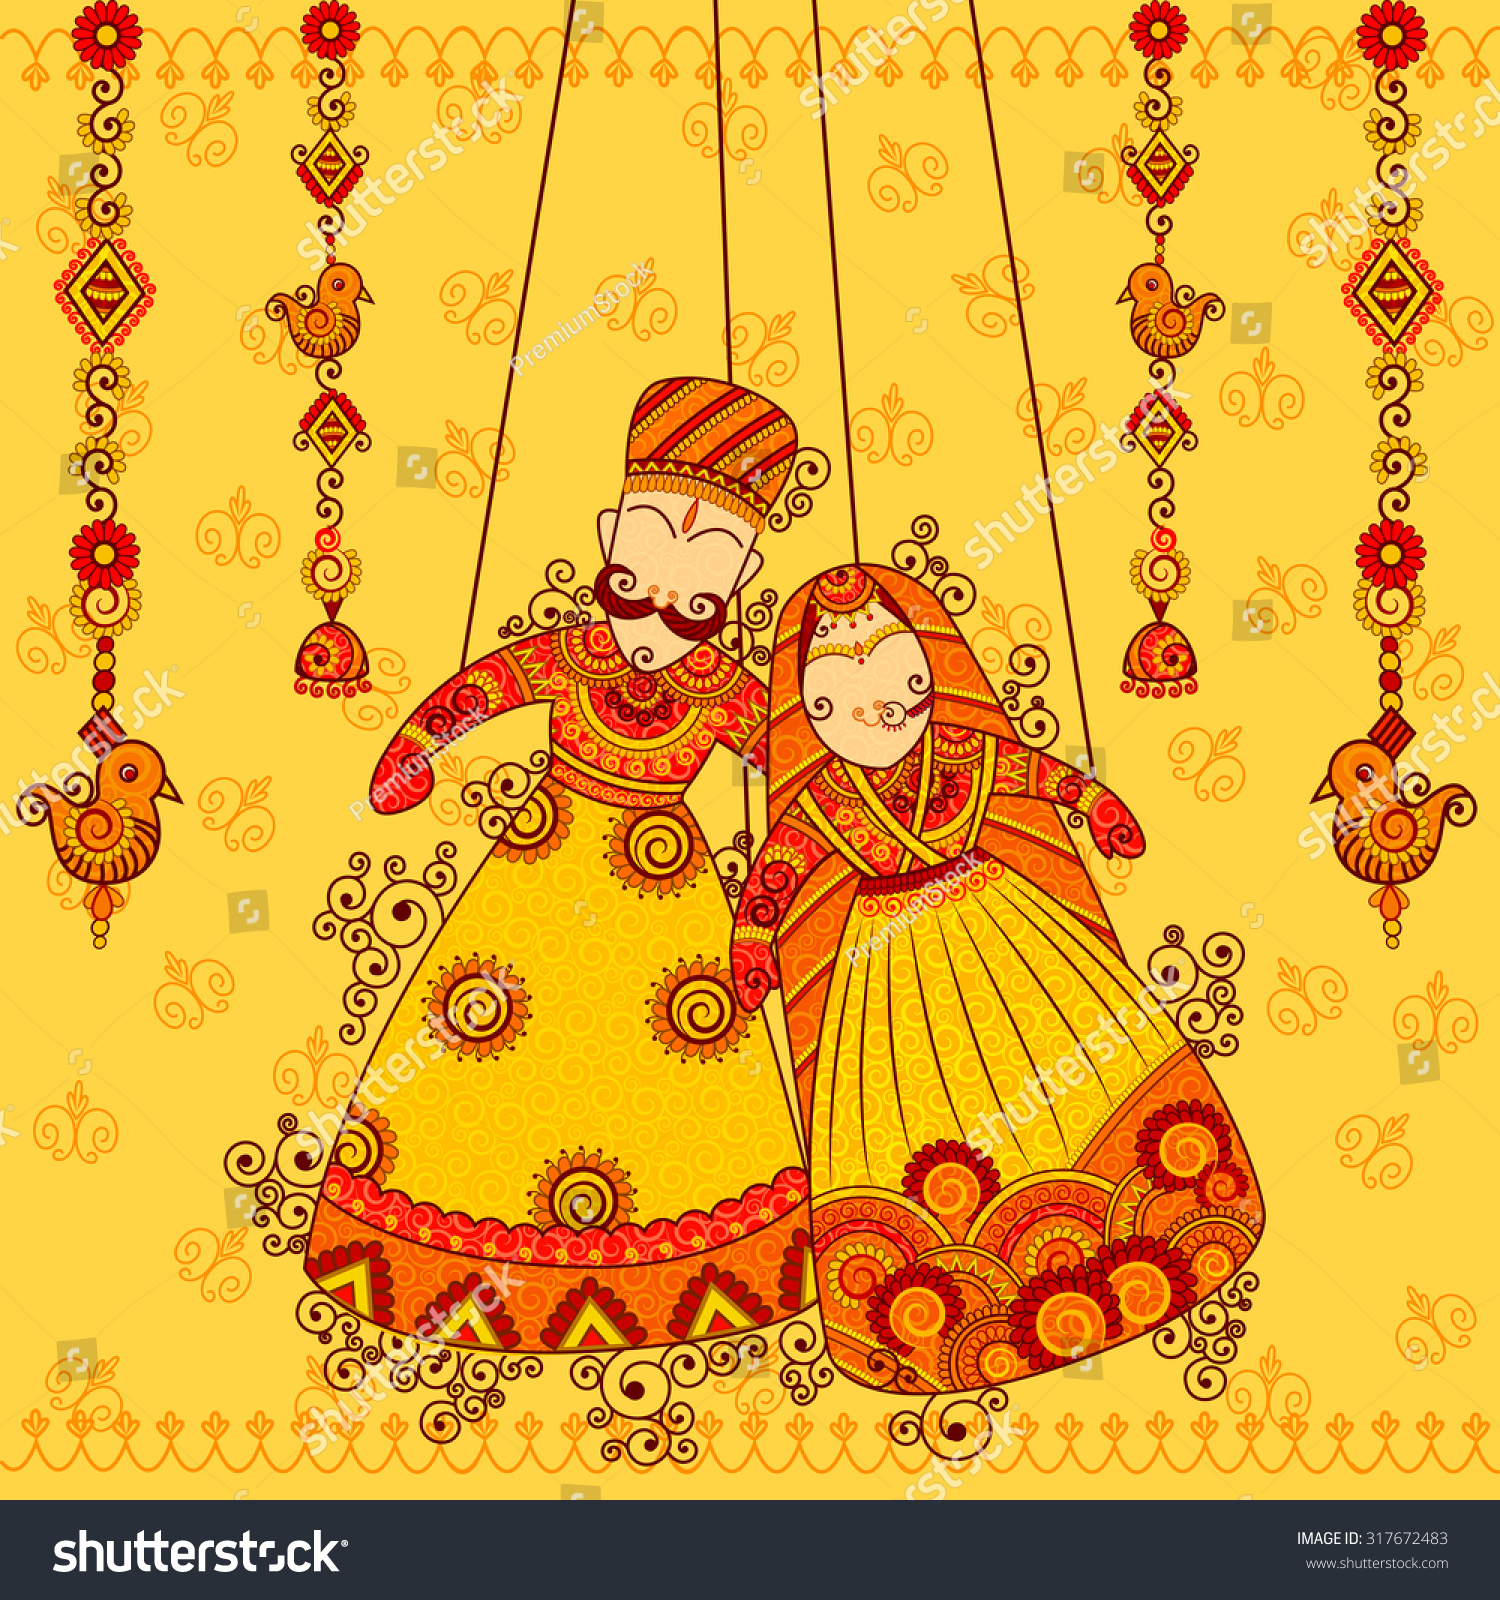 Vector design colorful rajasthani puppet indian stock for Art of indian cuisine